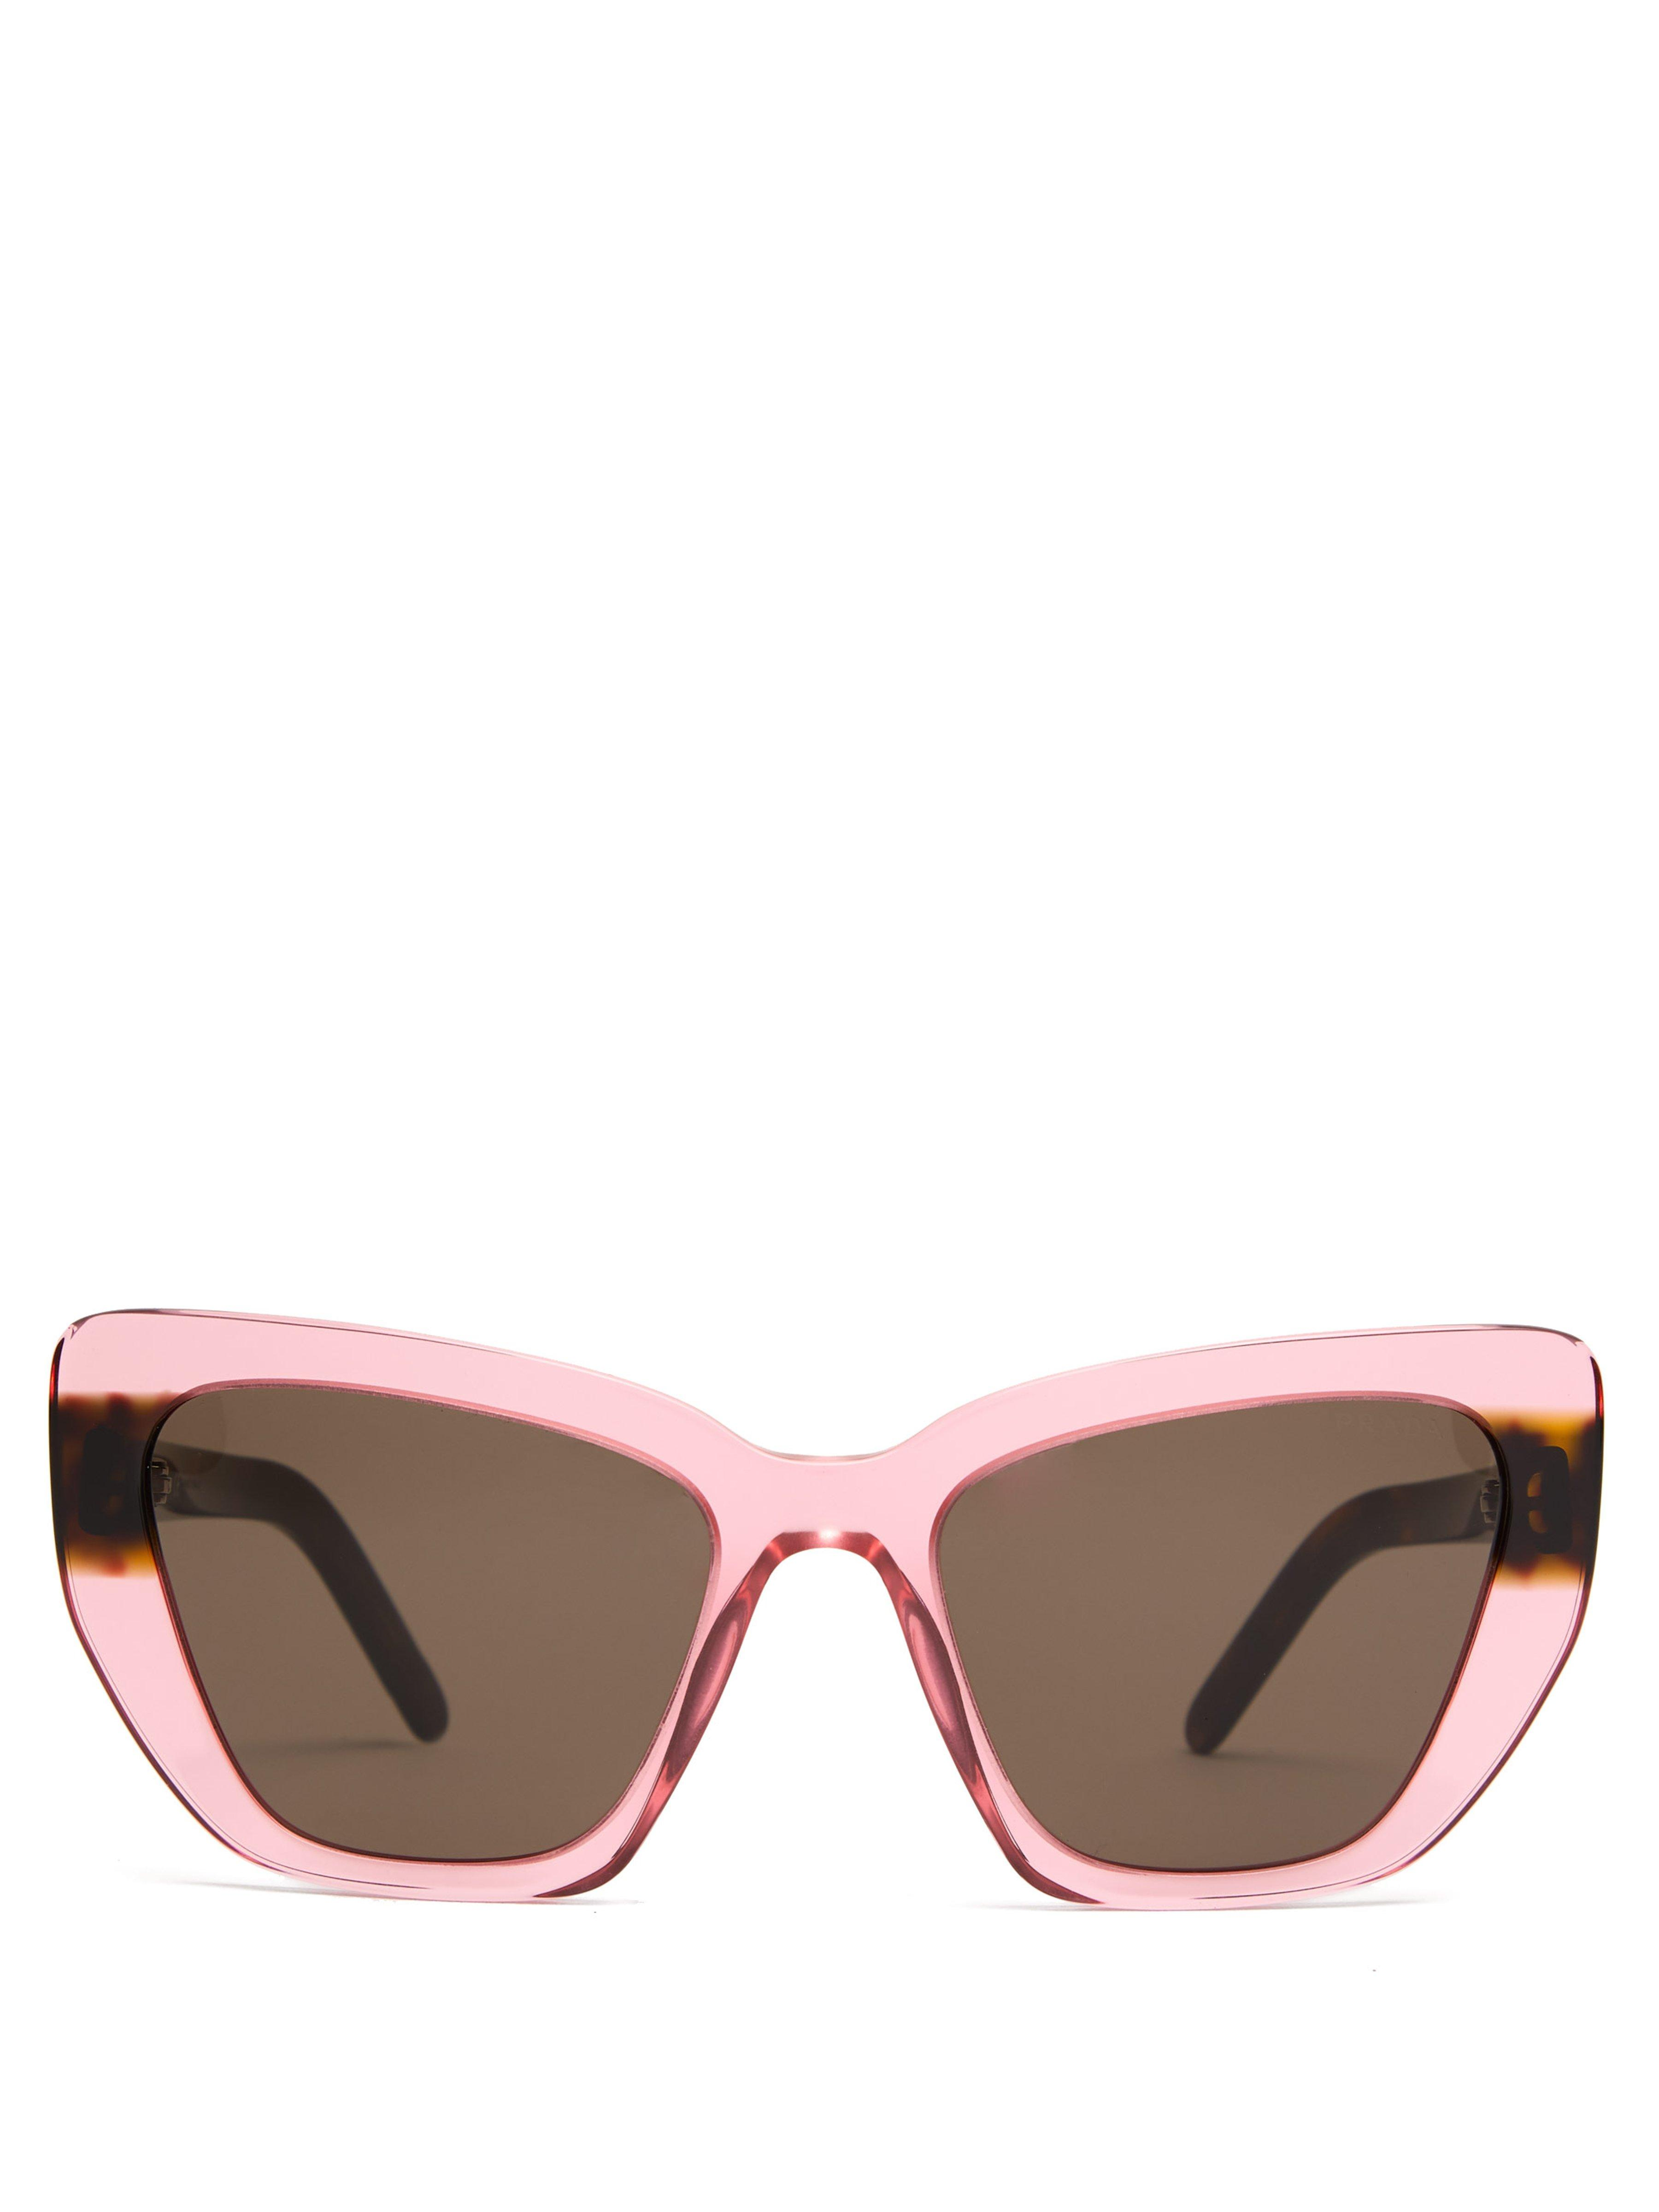 cd554234a0a Prada Winged Cat Eye Acetate Sunglasses in Pink - Lyst